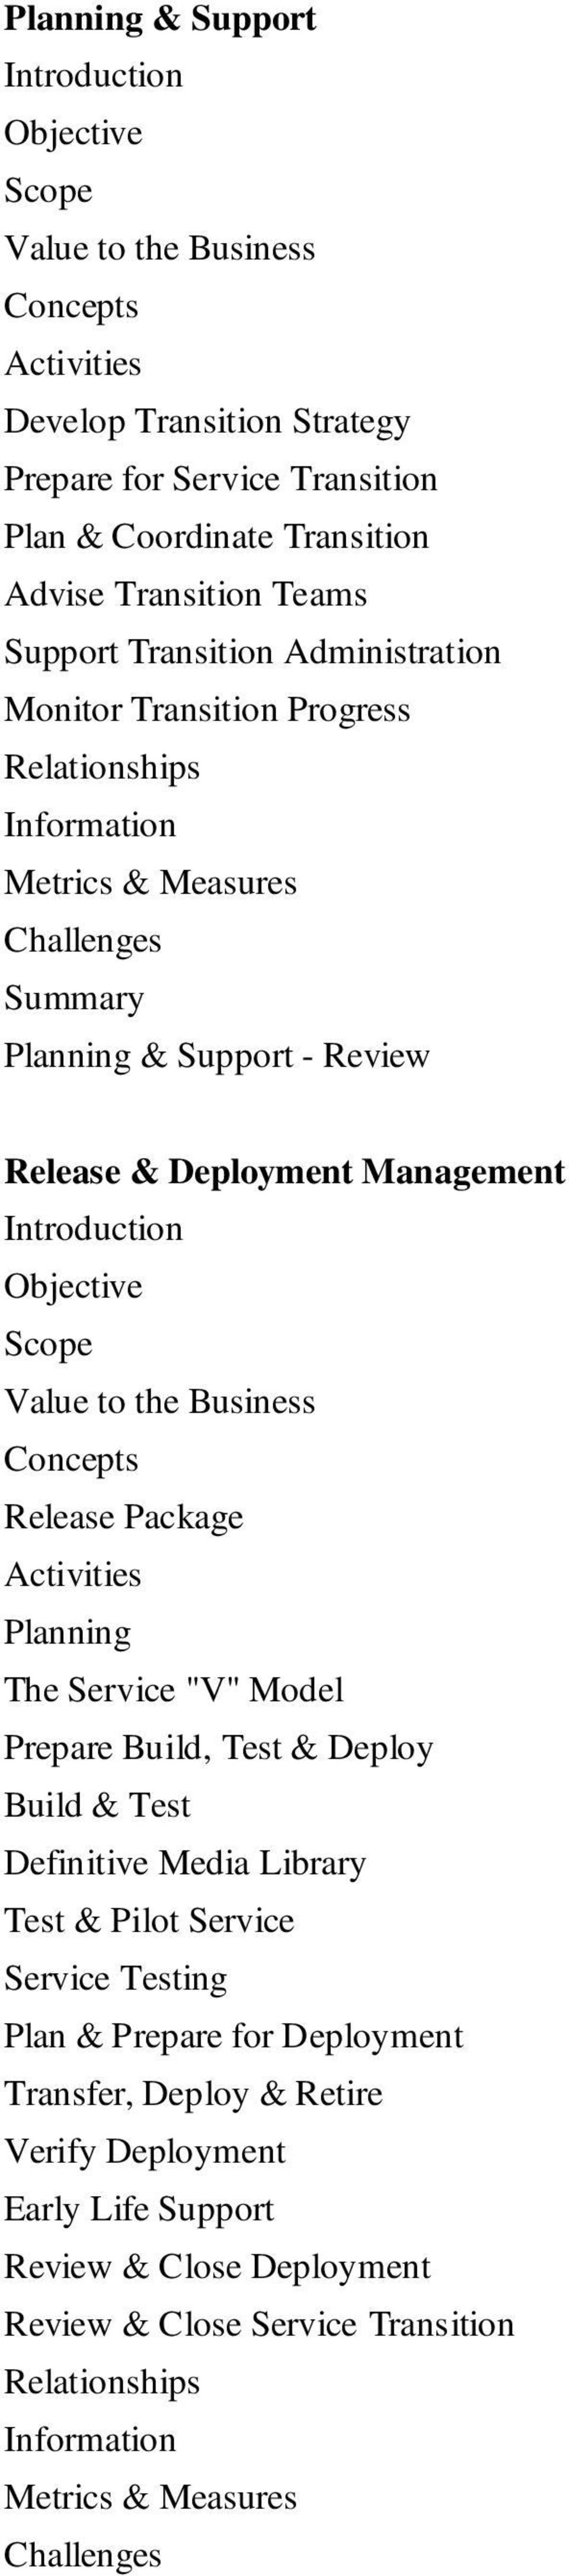 Itil V3 Service Manager Bridge Pdf